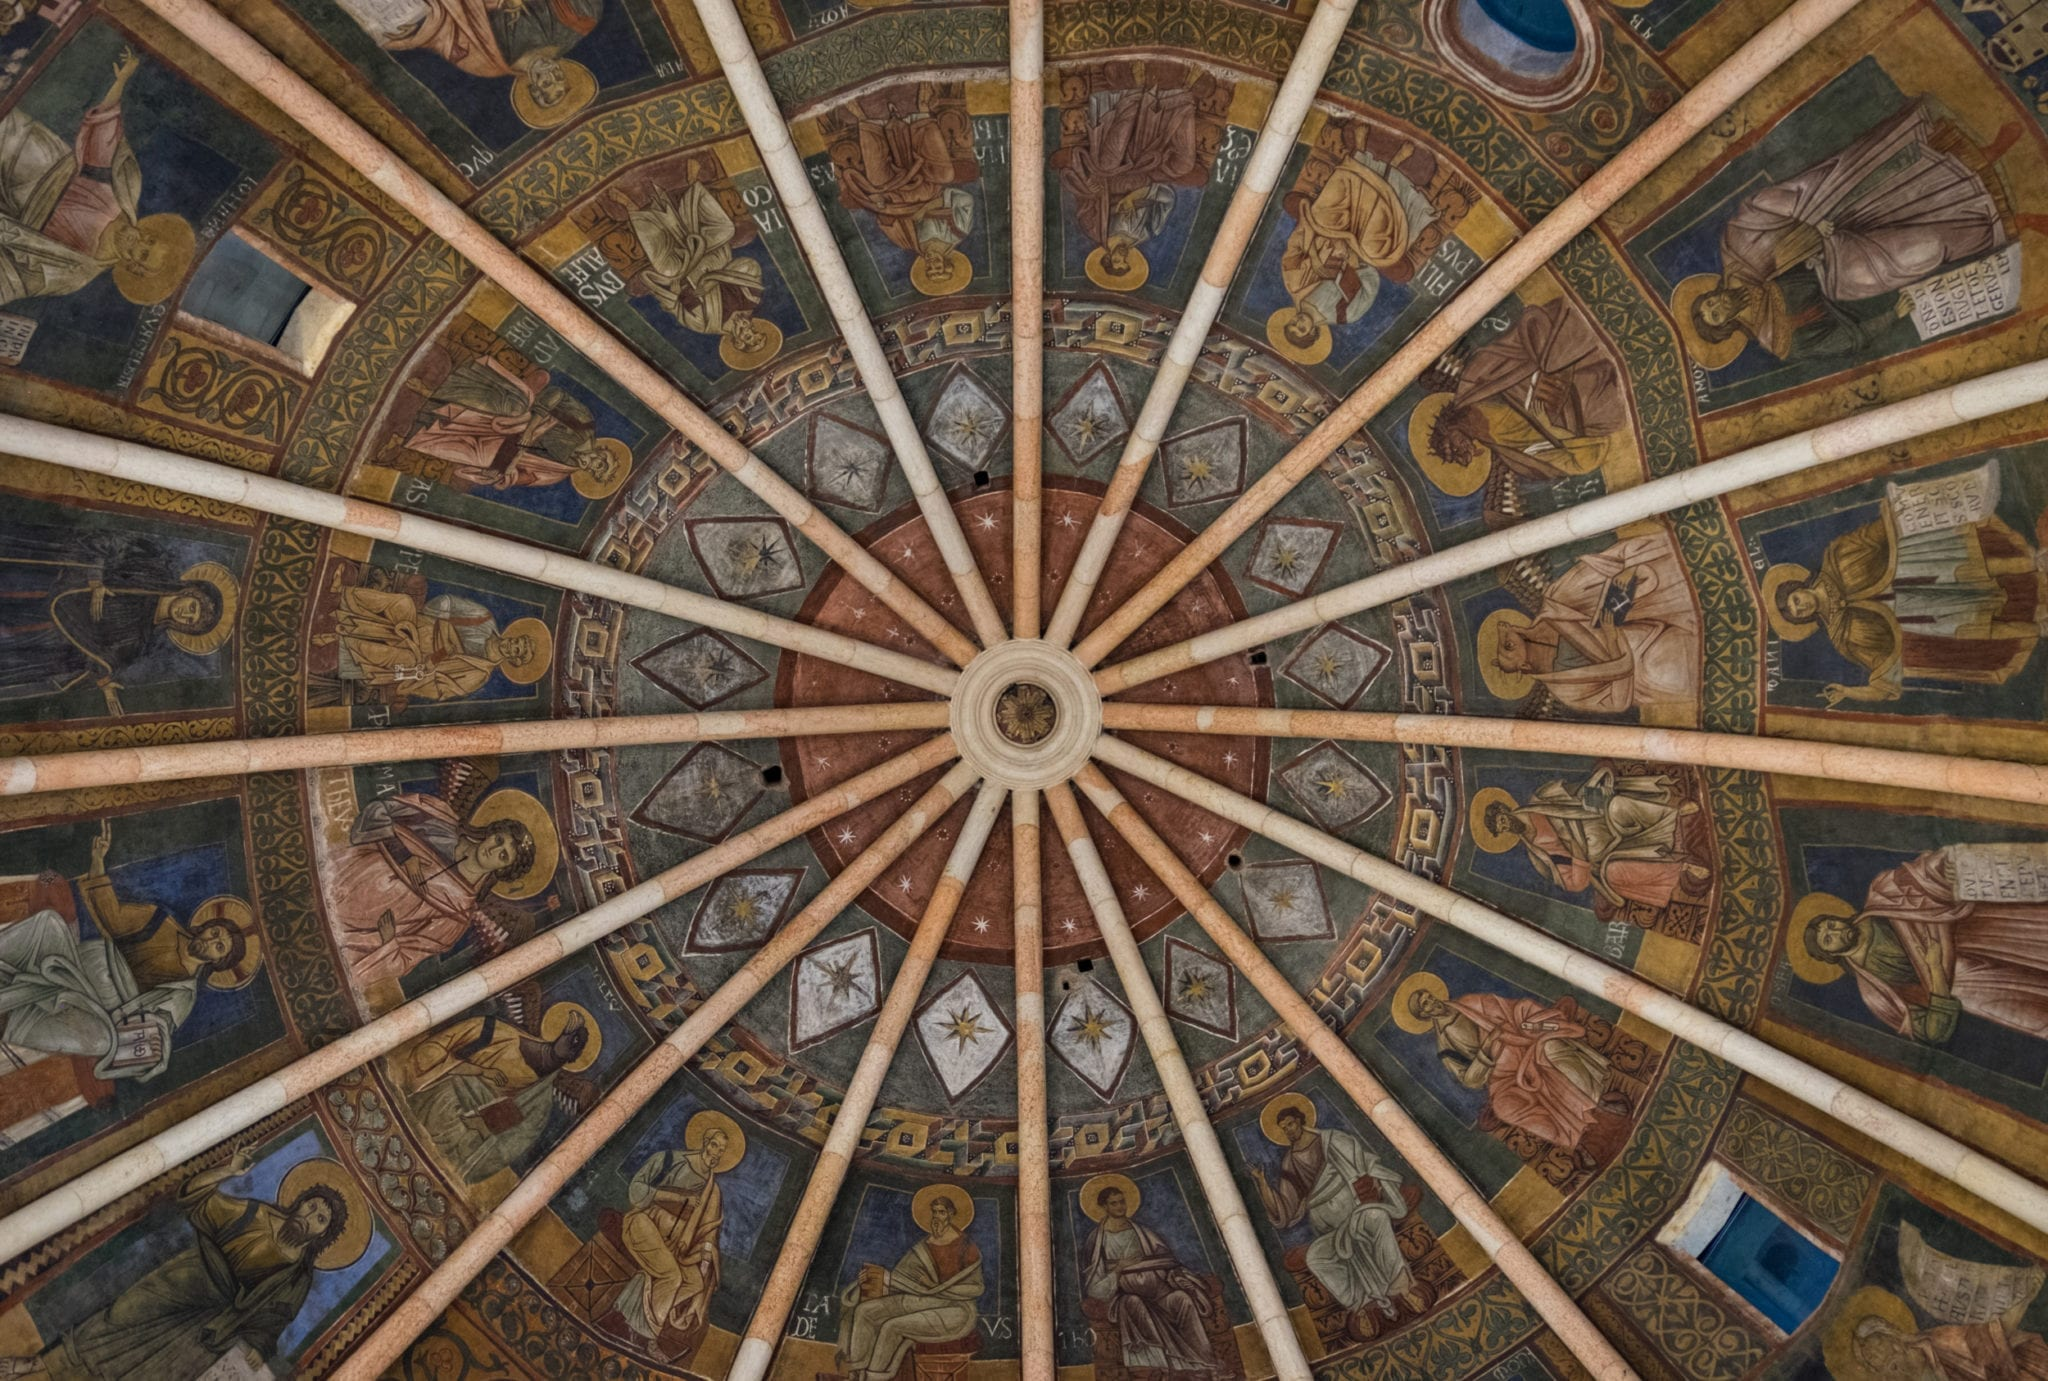 Parma's Baptistery ceiling -- planks leading to the center like a starburst, each segment covered in intricate frescoes.